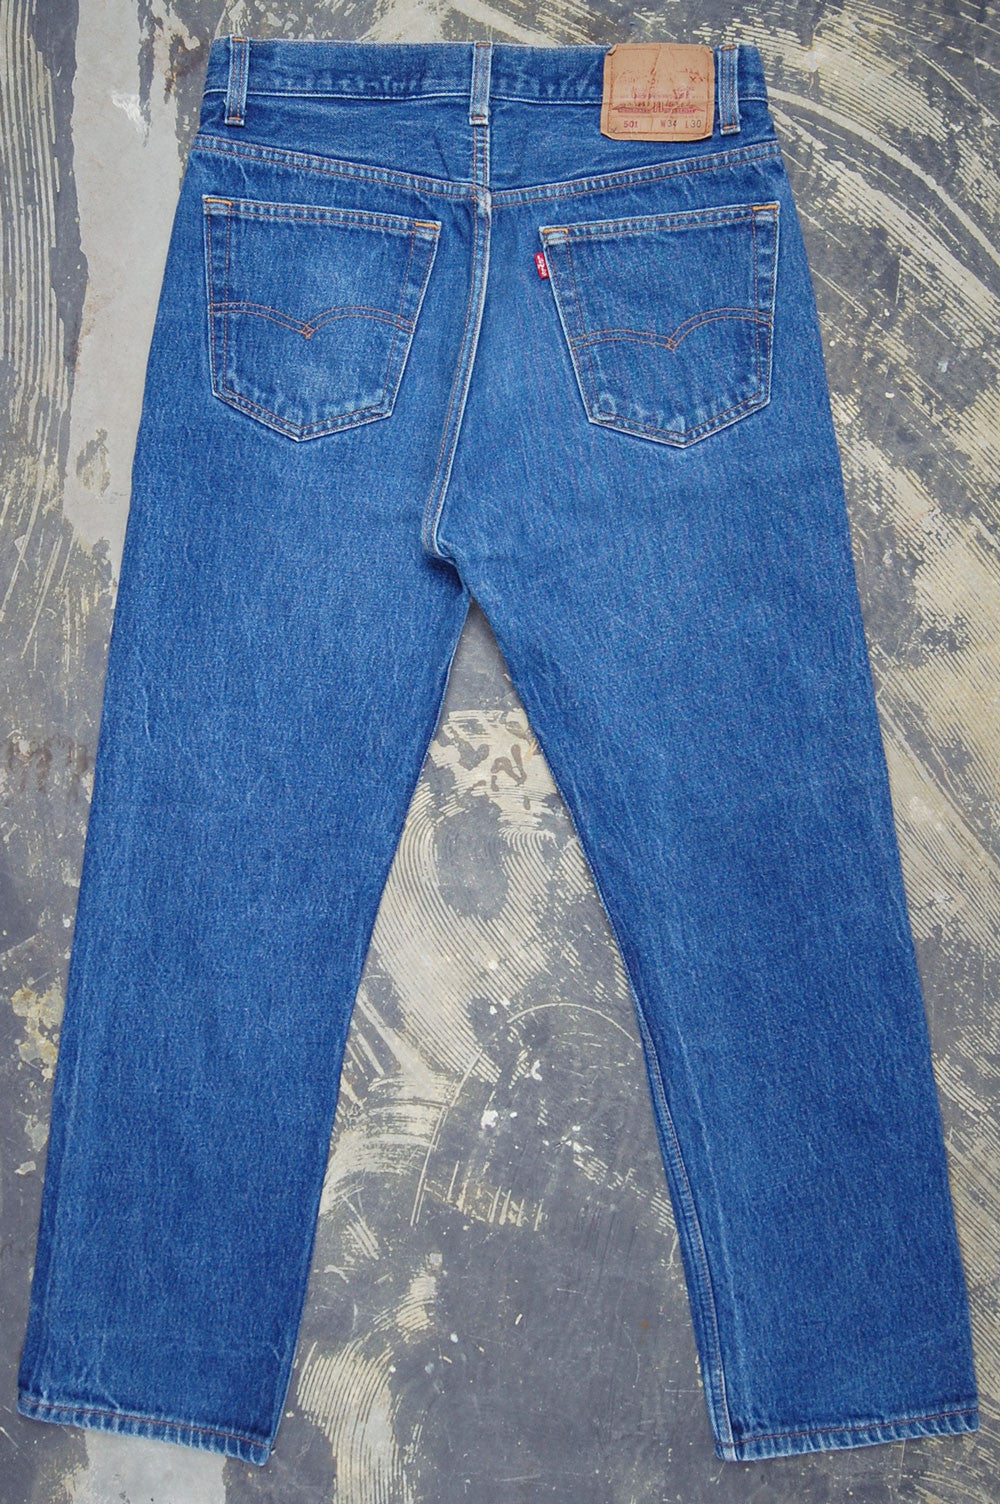 Vintage Levi's 501 USA Two Wash Denim Jeans